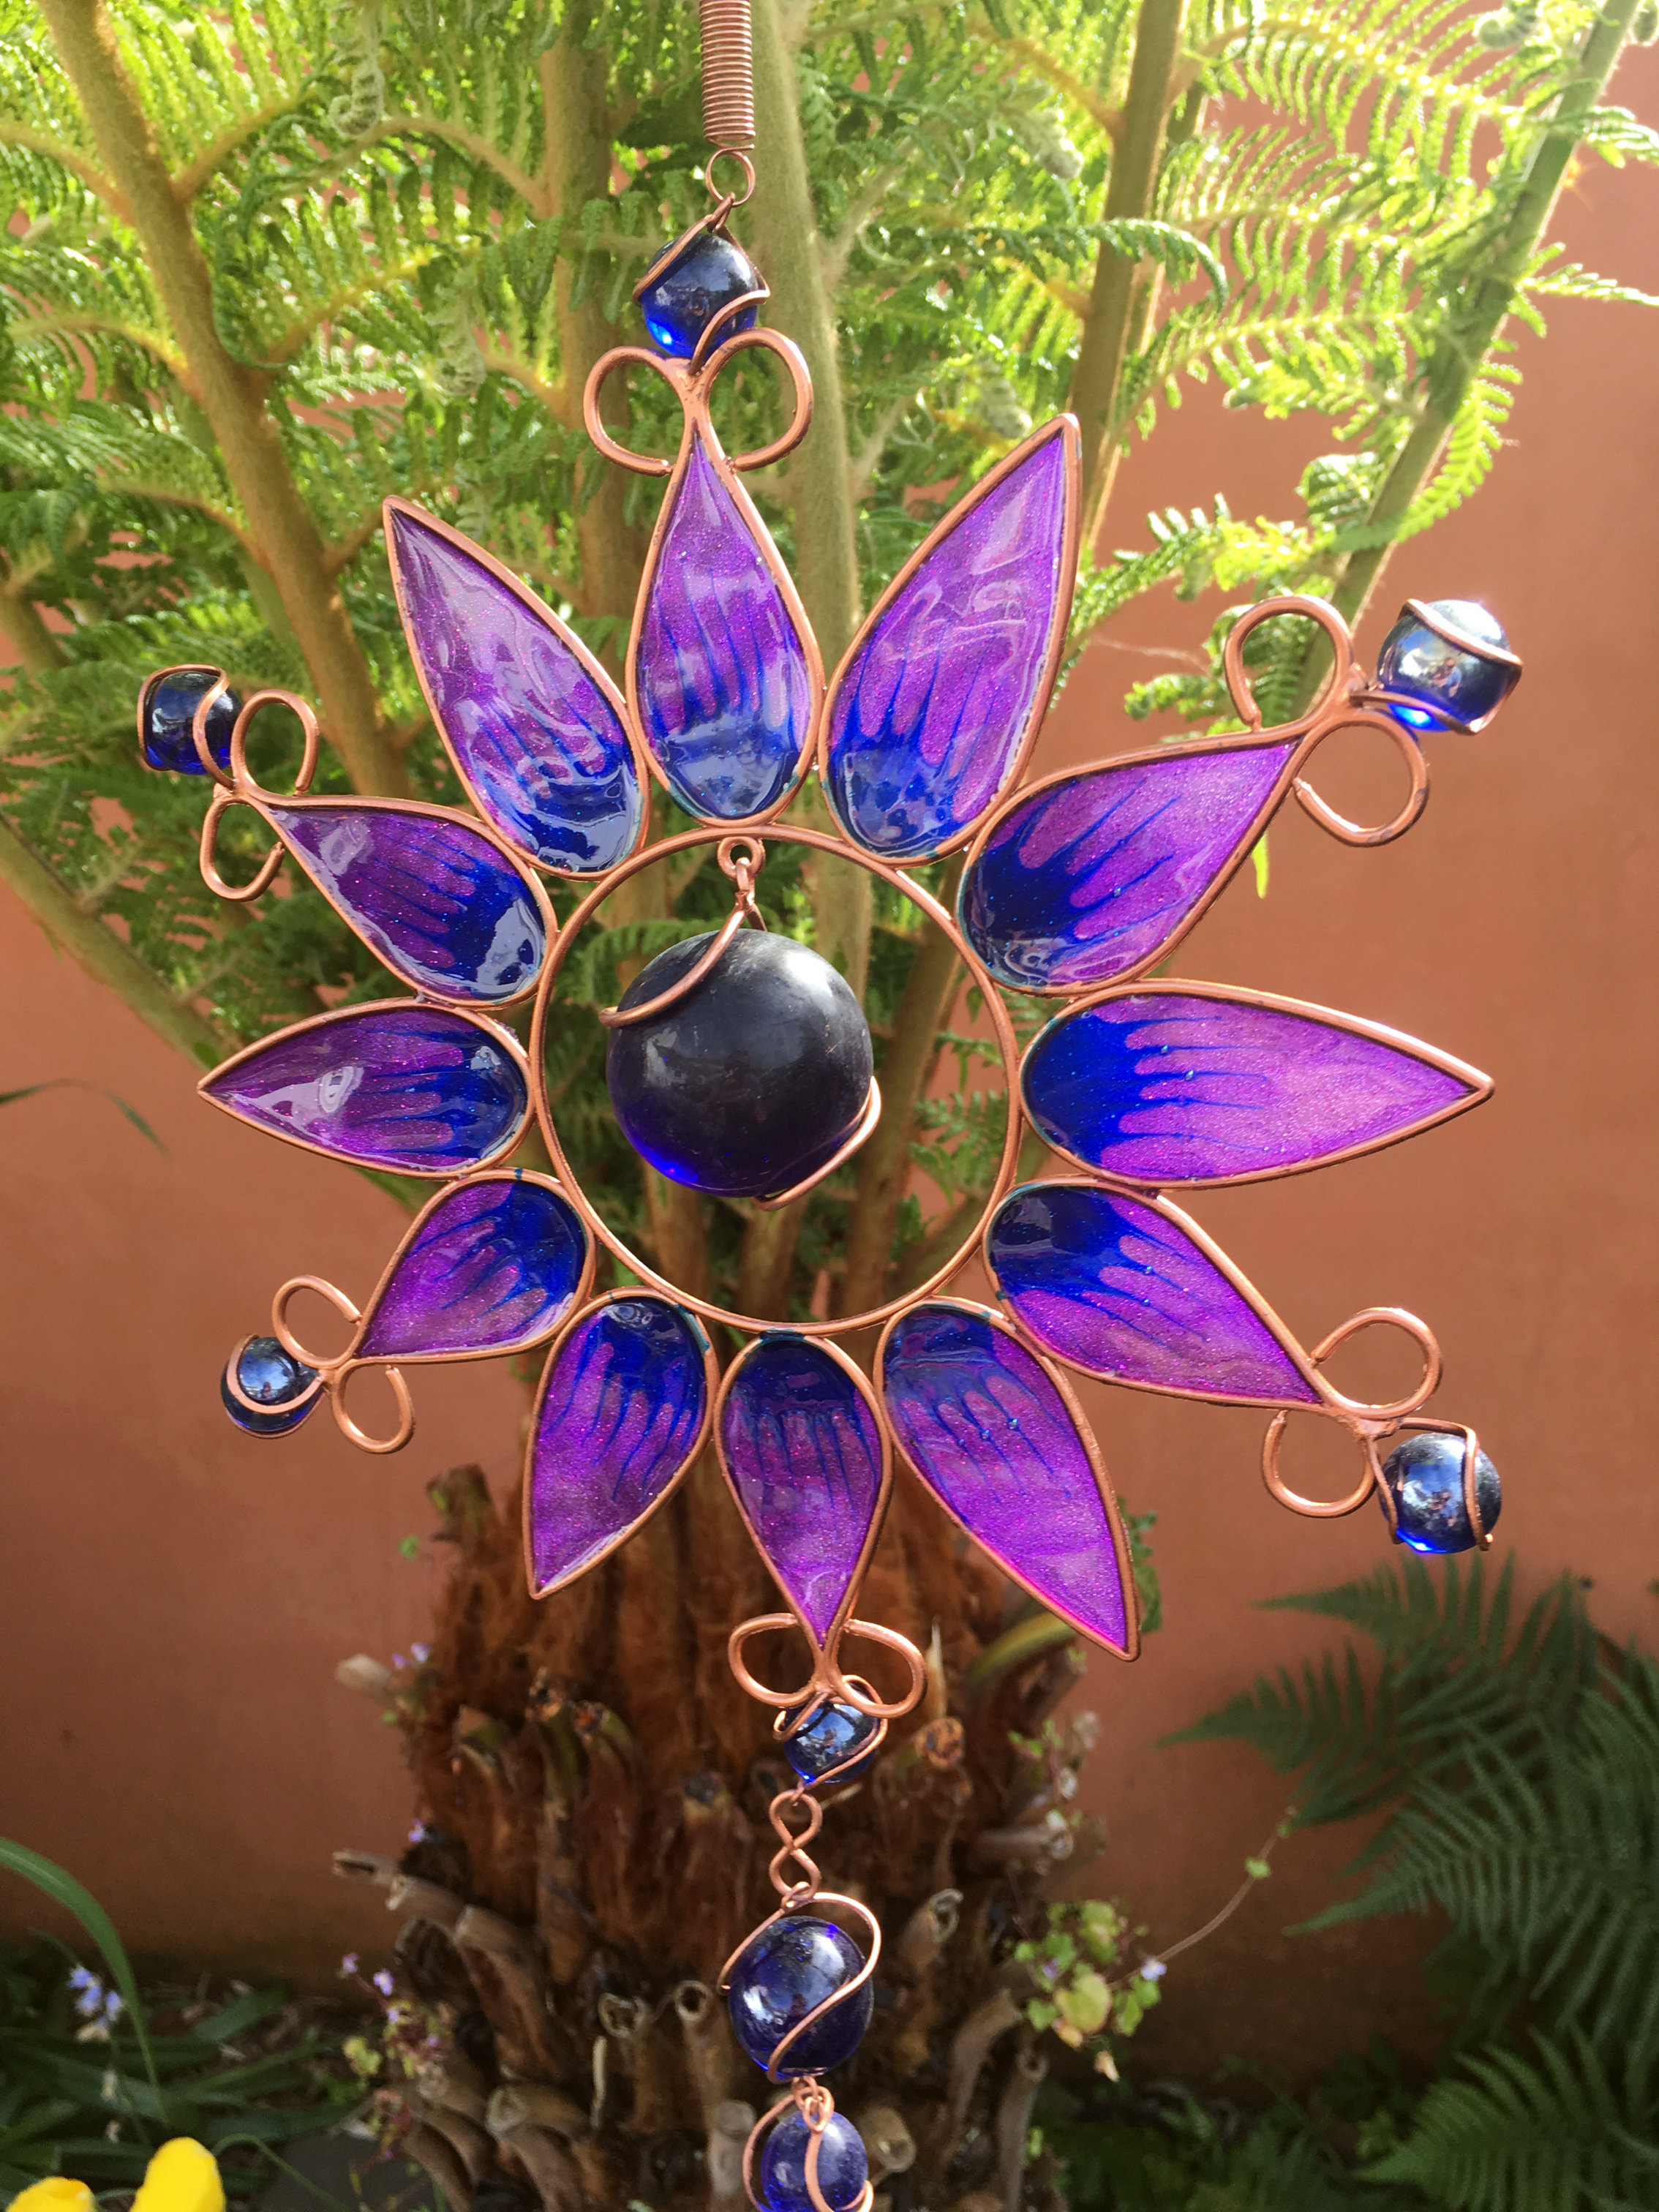 Large-Metal-amp-Glass-Hanging-Sun-Catcher-Wind-Chime-Home-Garden-Decorations thumbnail 24